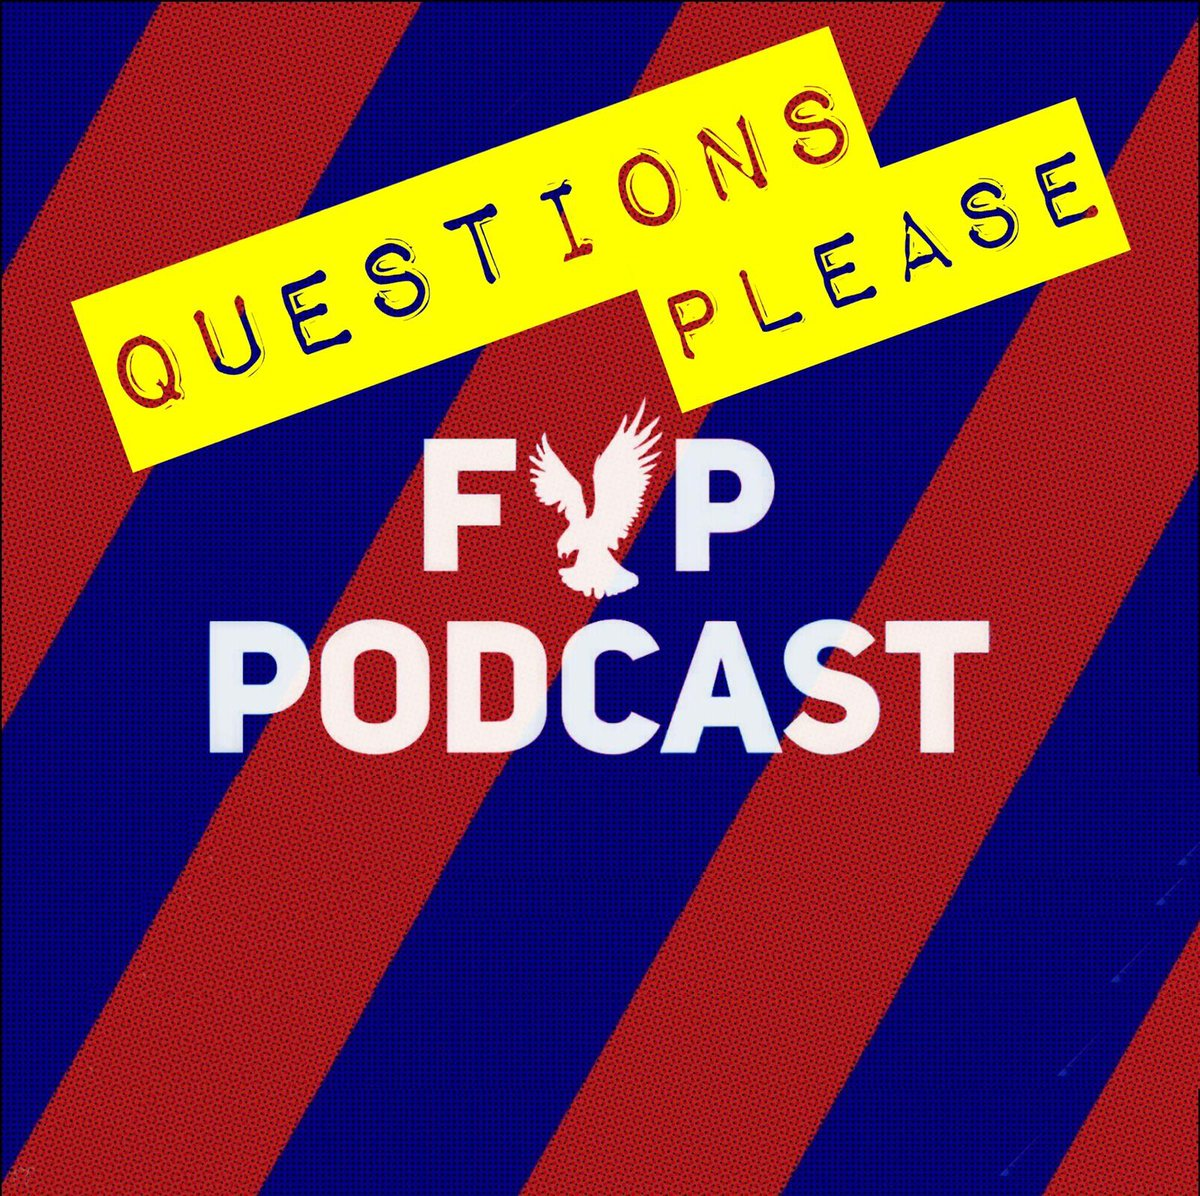 Let's have your questions for this week's main podcast please. #cpfc #FYPPodcast